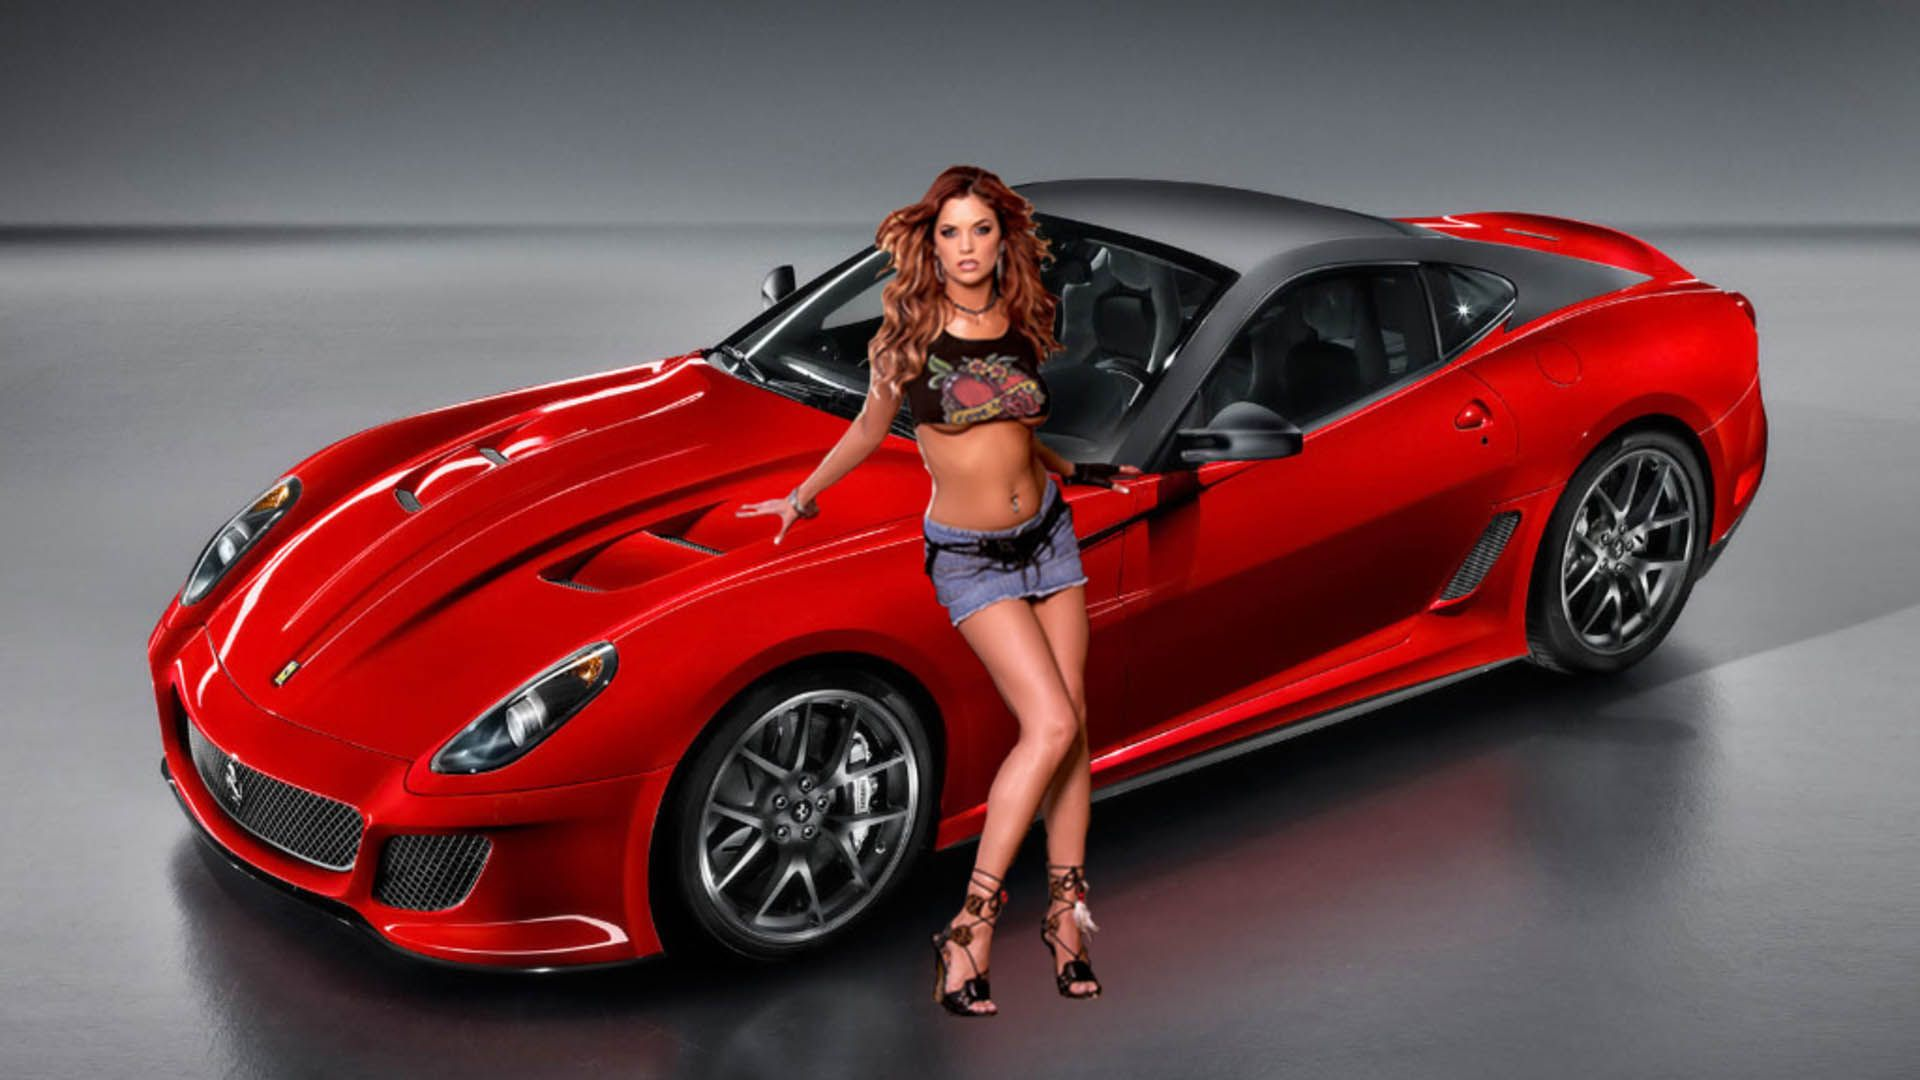 Sport Car Wallpaper With Girl: Pin By Andrew Stehman On Cars